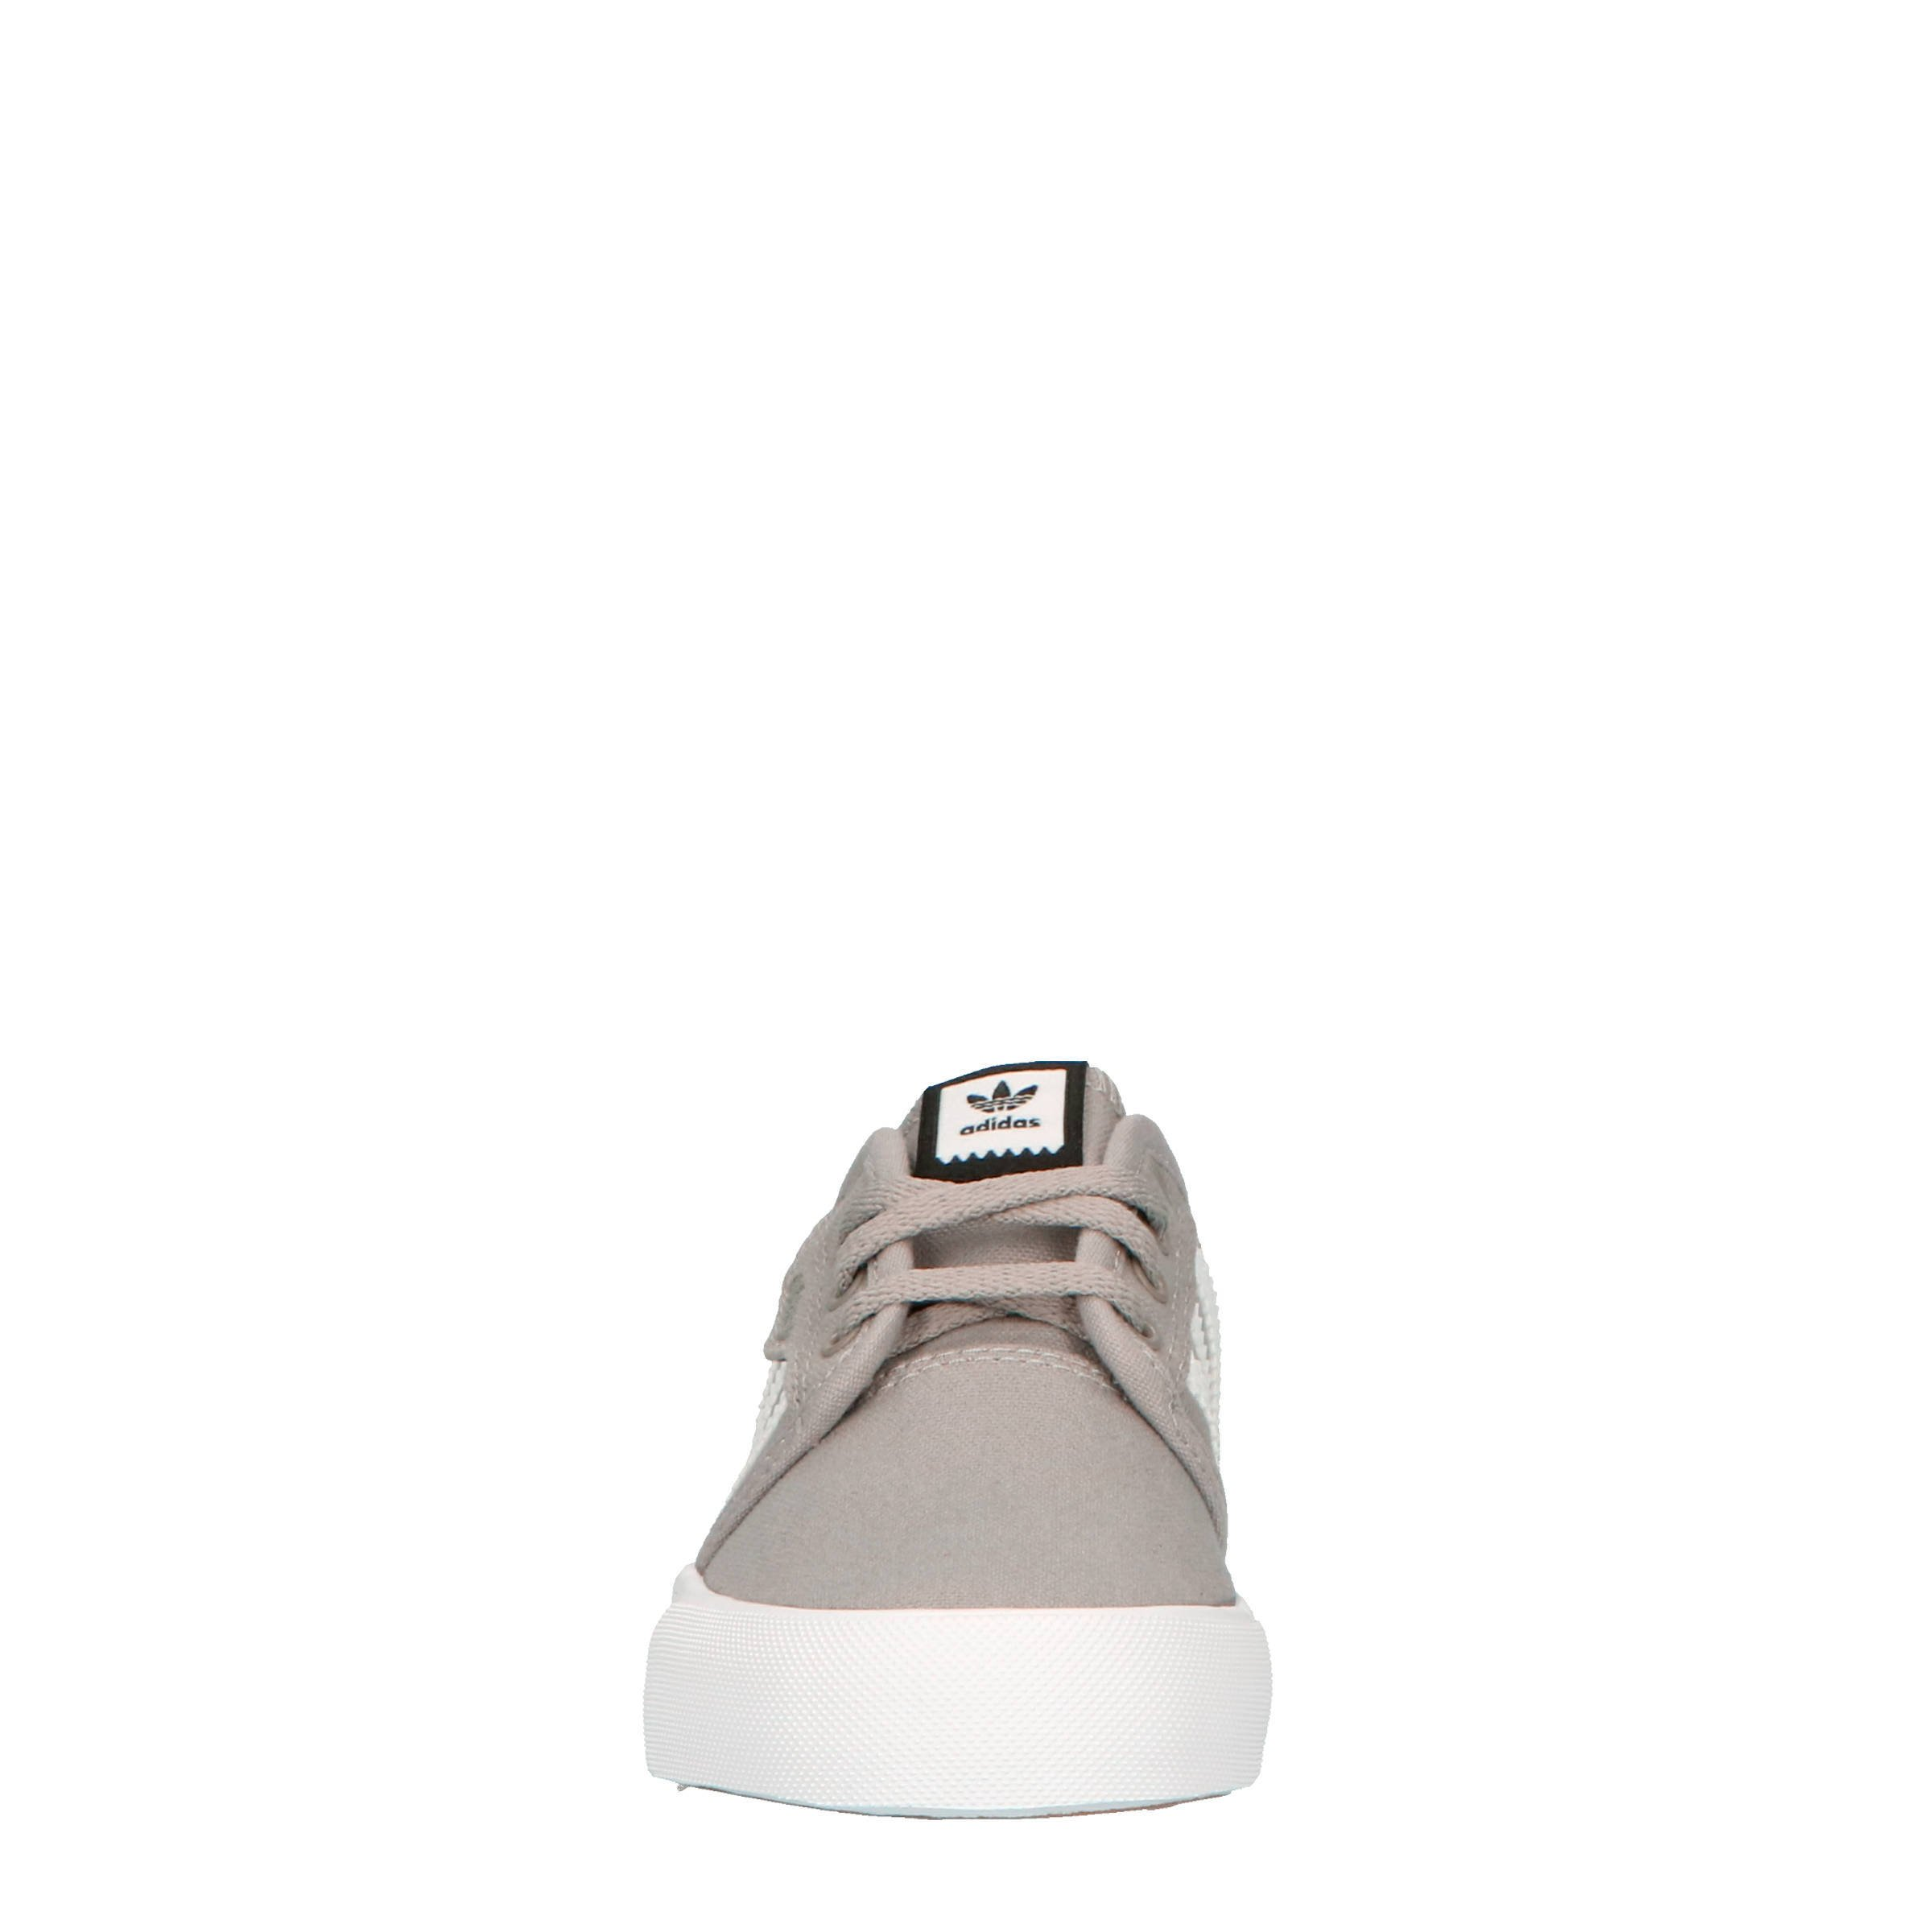 Seeley J sneakers grijswit